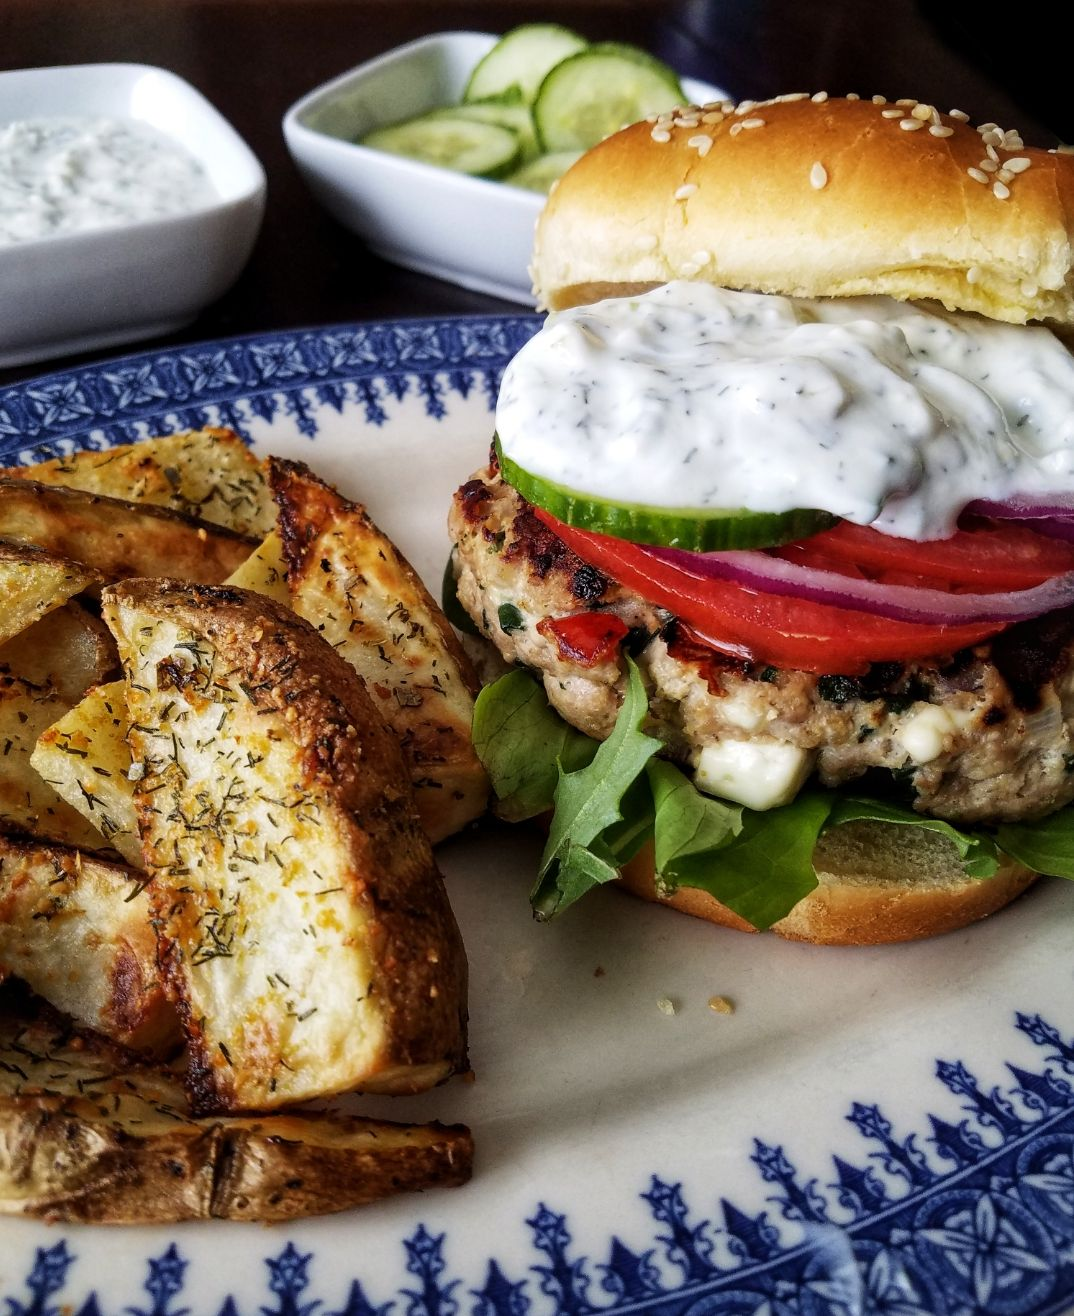 Turkey Burgers with Dill Sauce